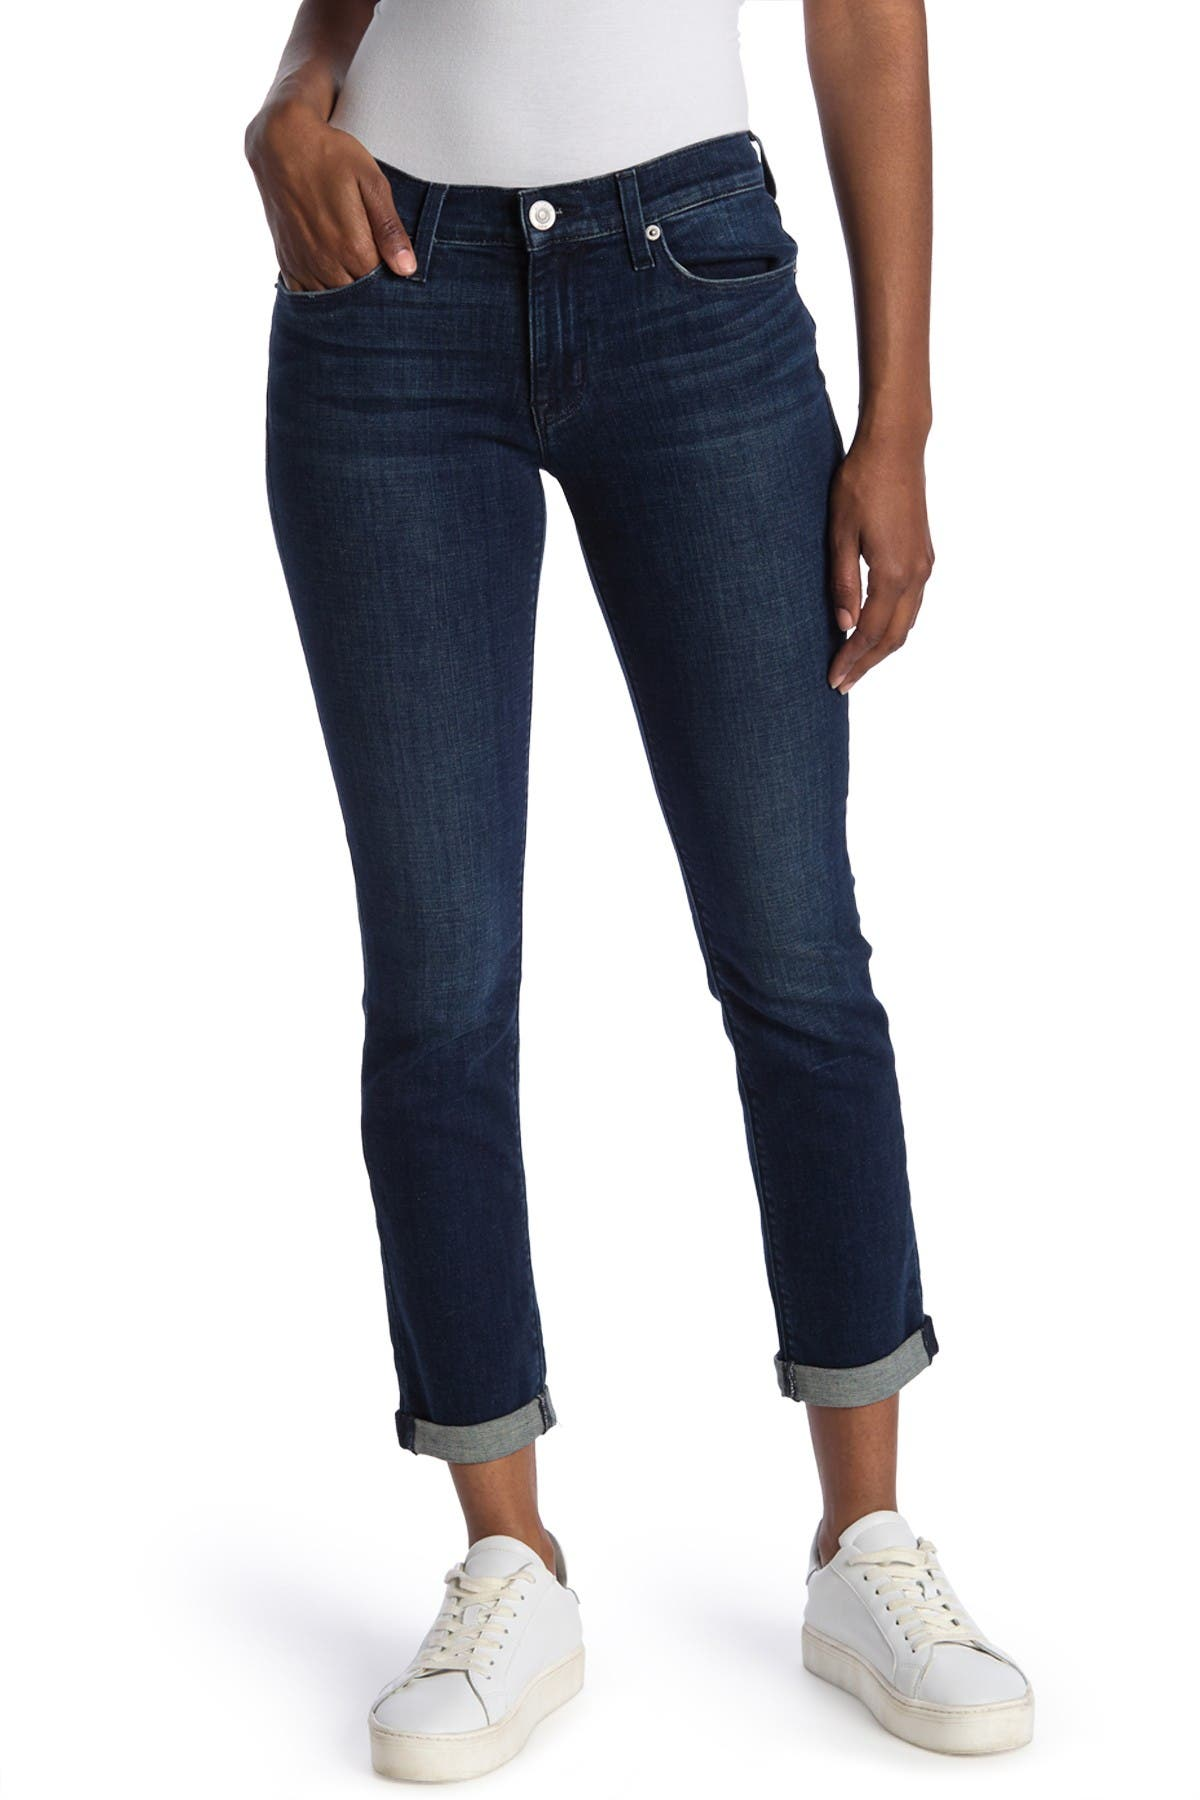 Image of HUDSON Jeans Krista Low Rise Straight Leg Cropped Jeans